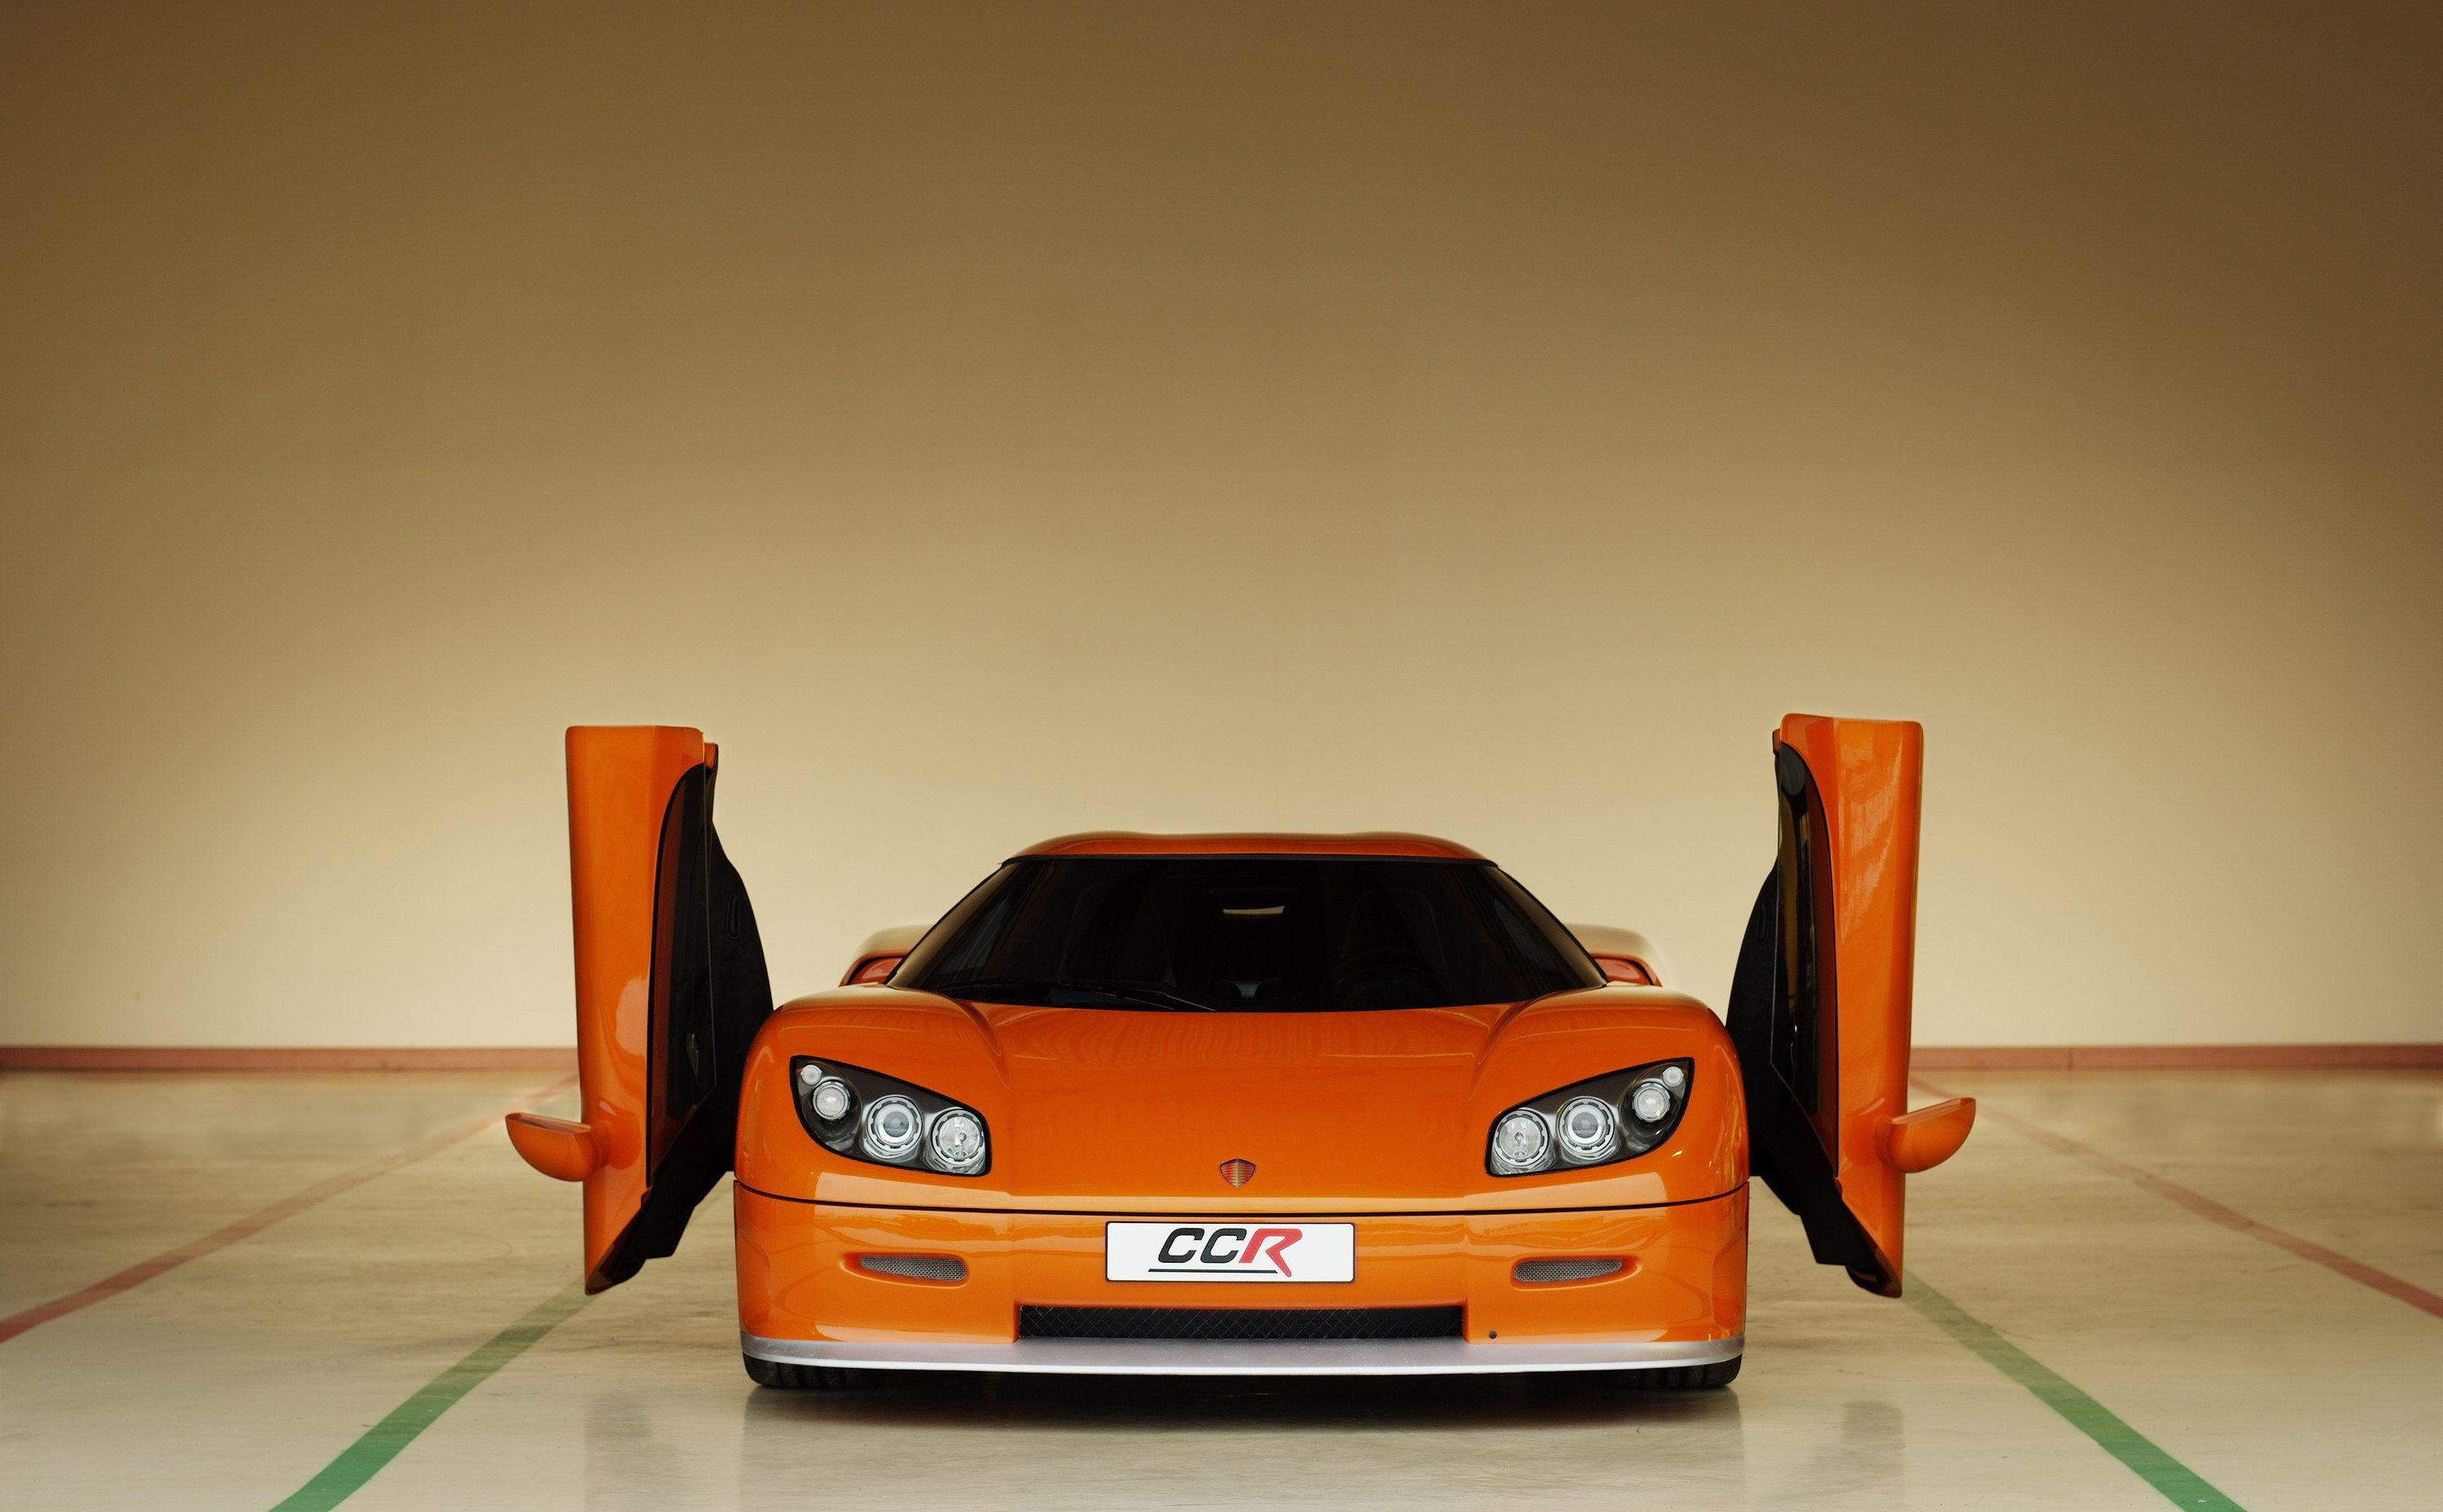 cars orange vehicles Koenigsegg HD Wallpaper